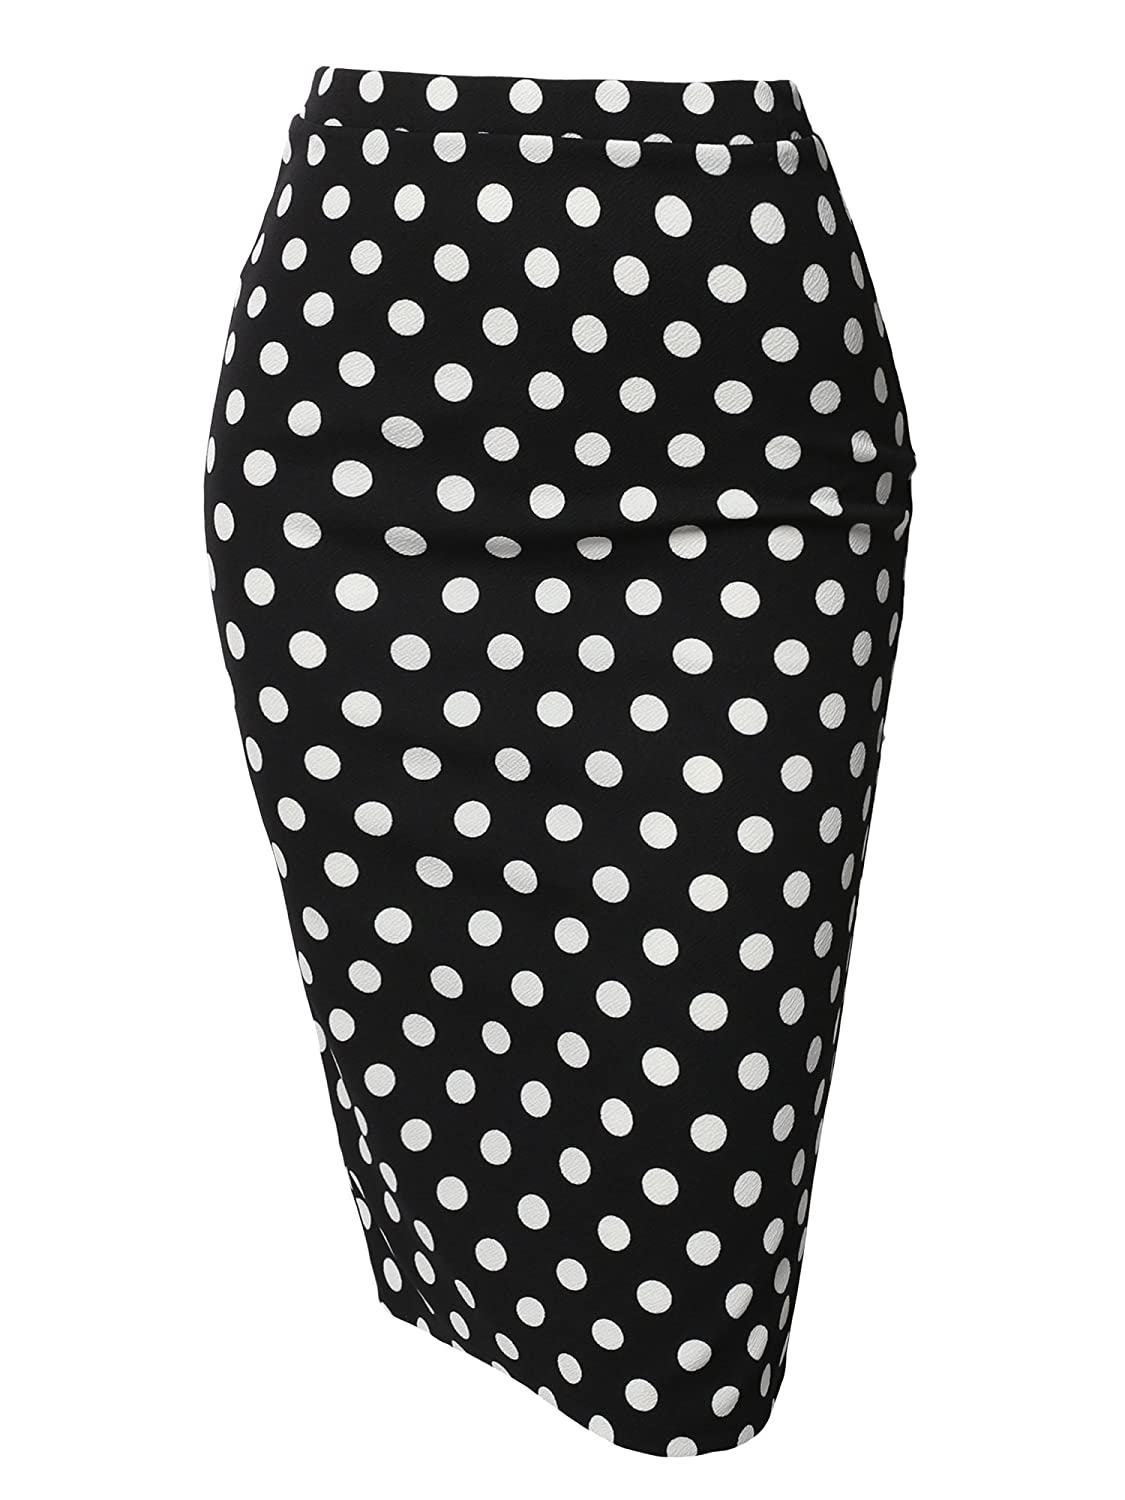 Aawskm0001 Black White Polka Awesome21 Women's Fitted Stretch Solid Print High Waist Midi Pencil Skirt  Made in USA